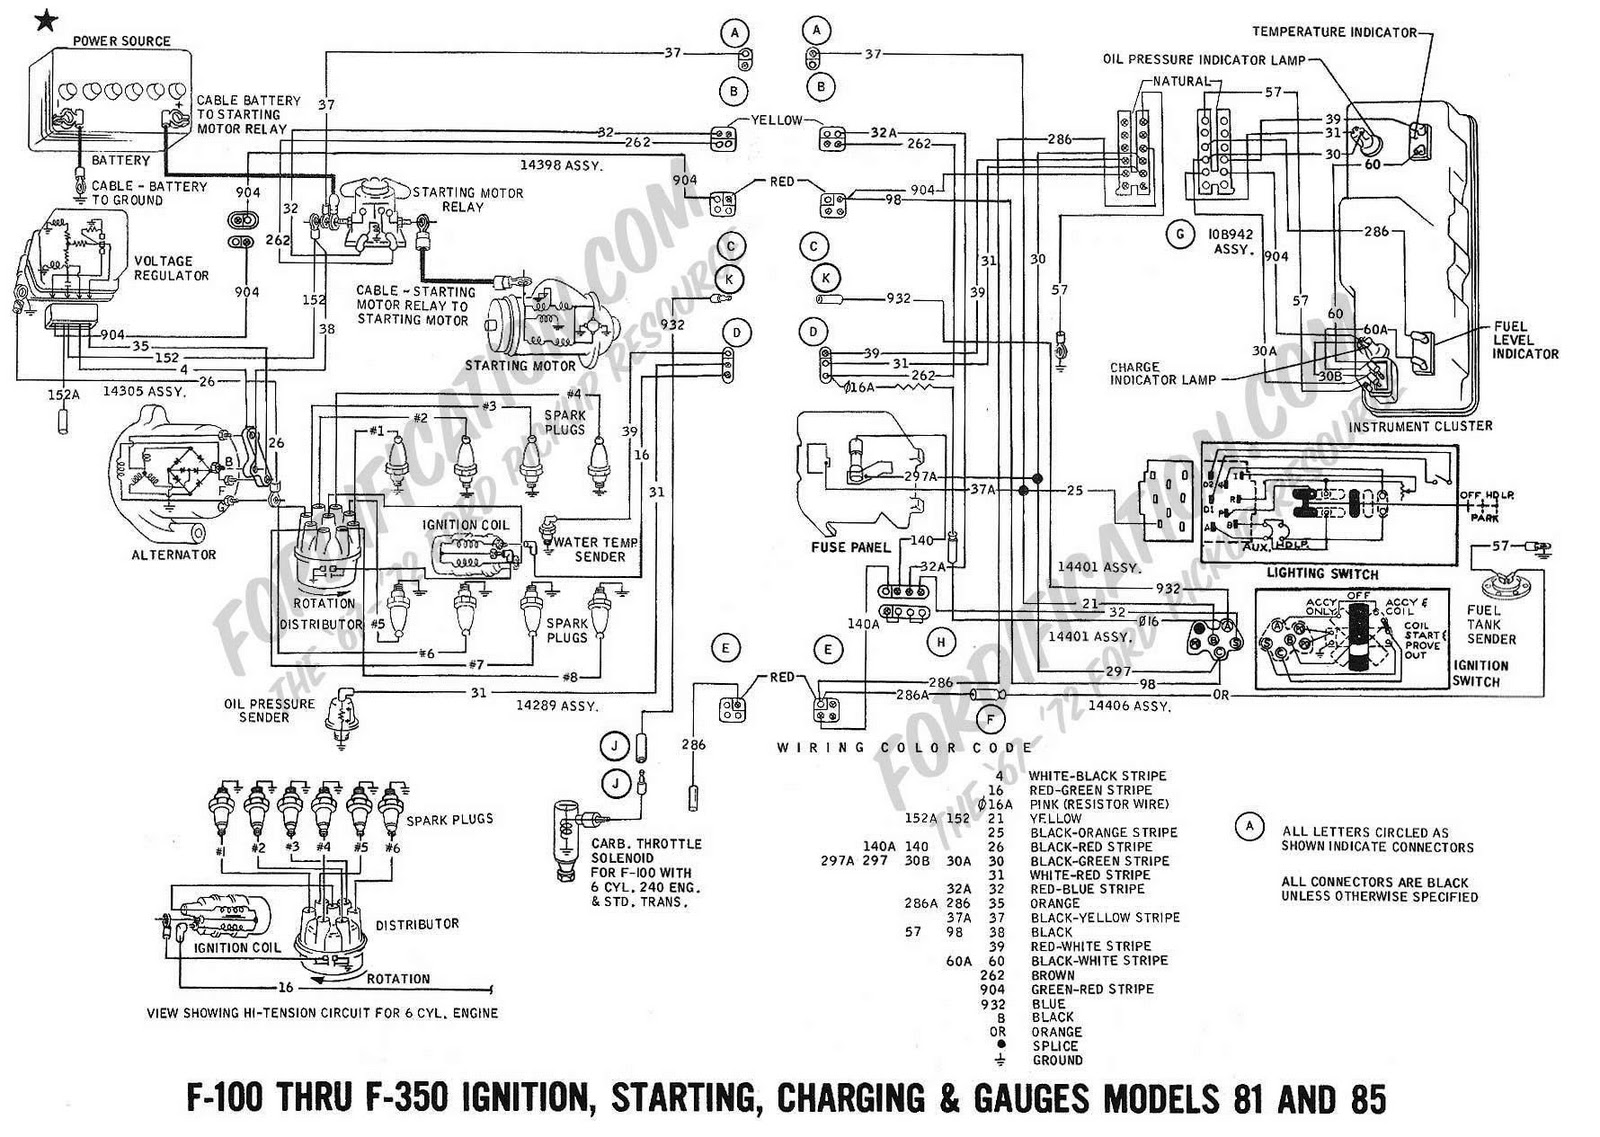 1964 ford falcon fuse box